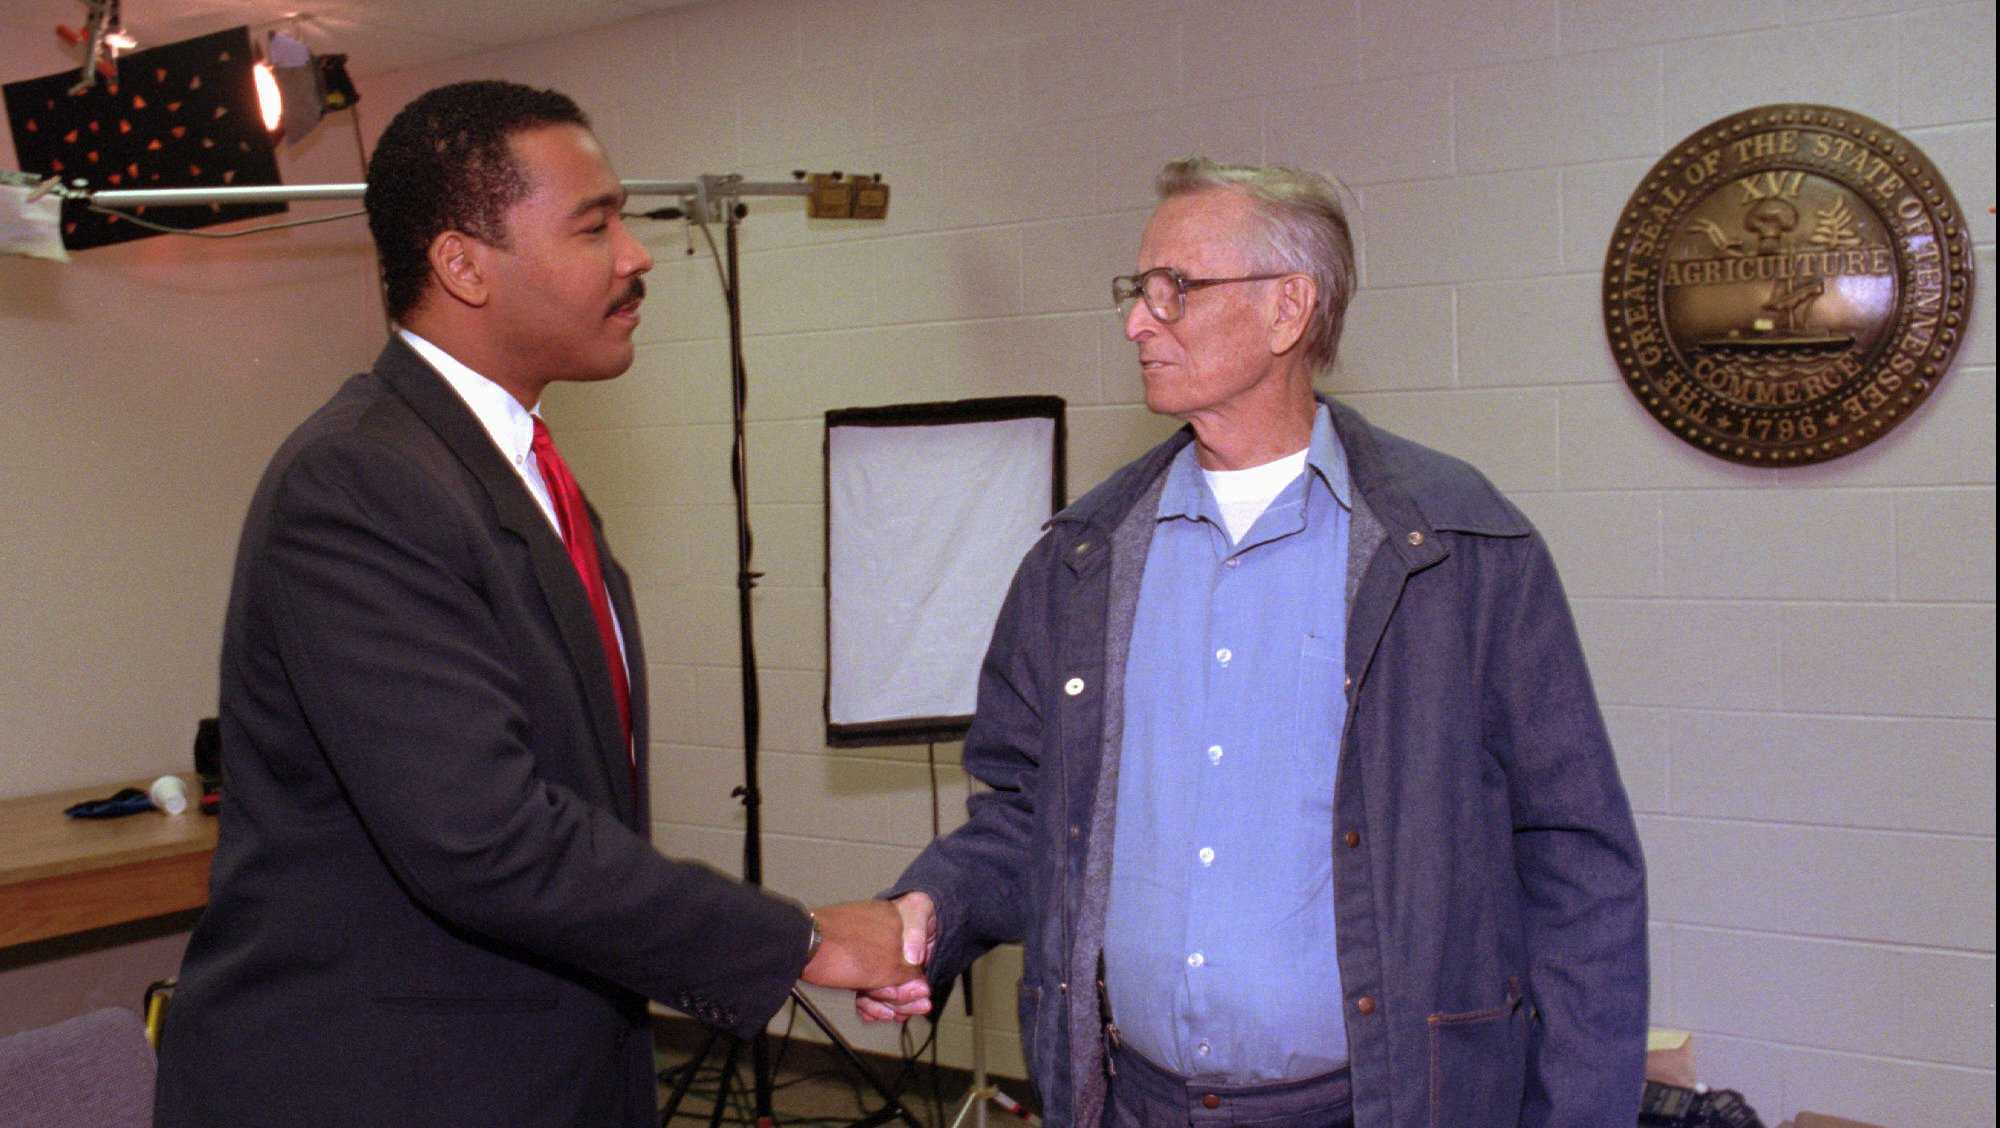 Today in History for March 27: MLK's son meets his father's convicted killer